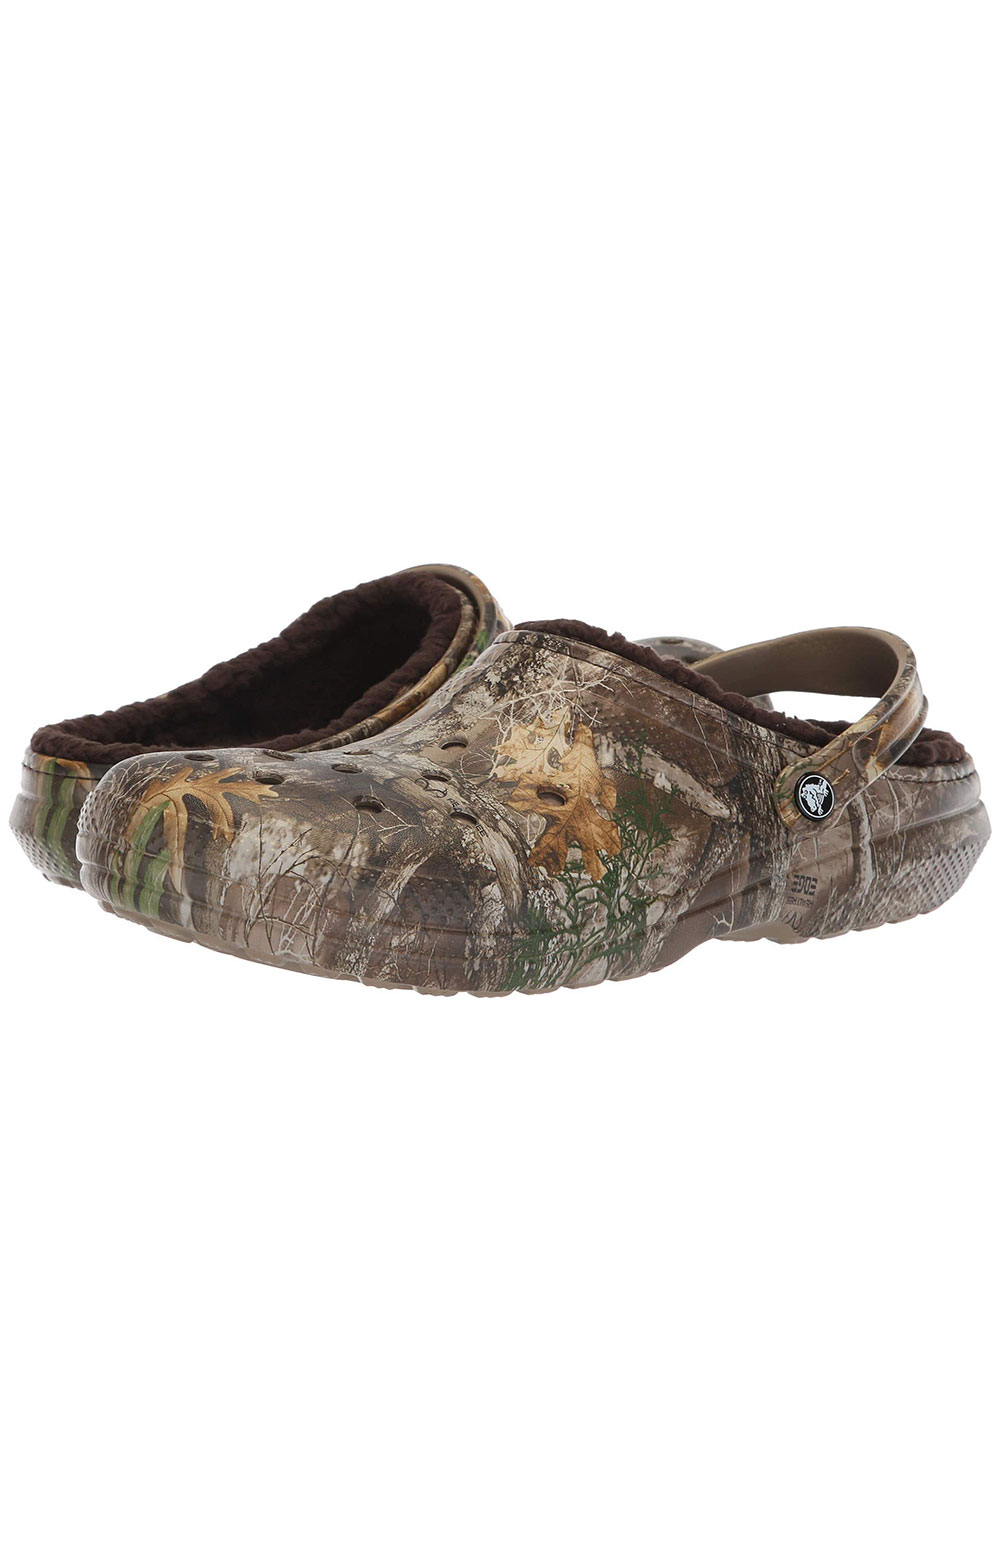 Classic Lined Realtree Edge Clogs - Chocolate/Chocolate 3